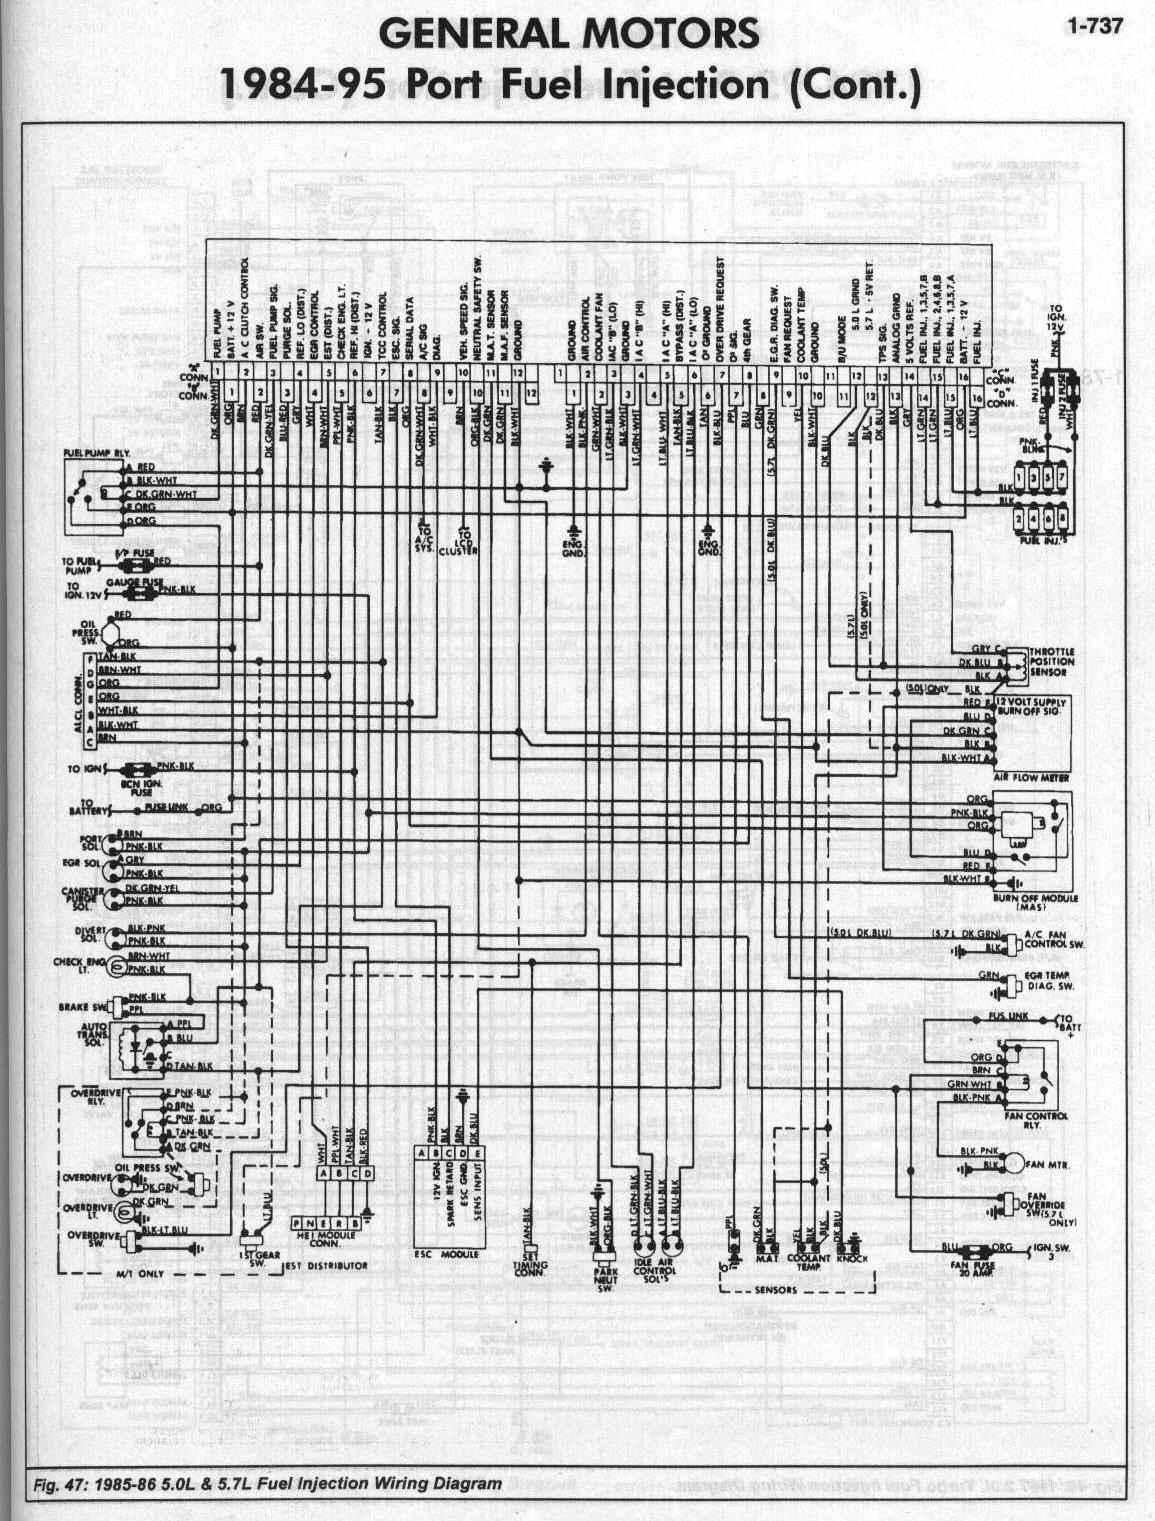 1985 Camaro Tpi Wiring Harness Diagram Will Be A Thing 89 My 85 Z28 And Eprom Project L98